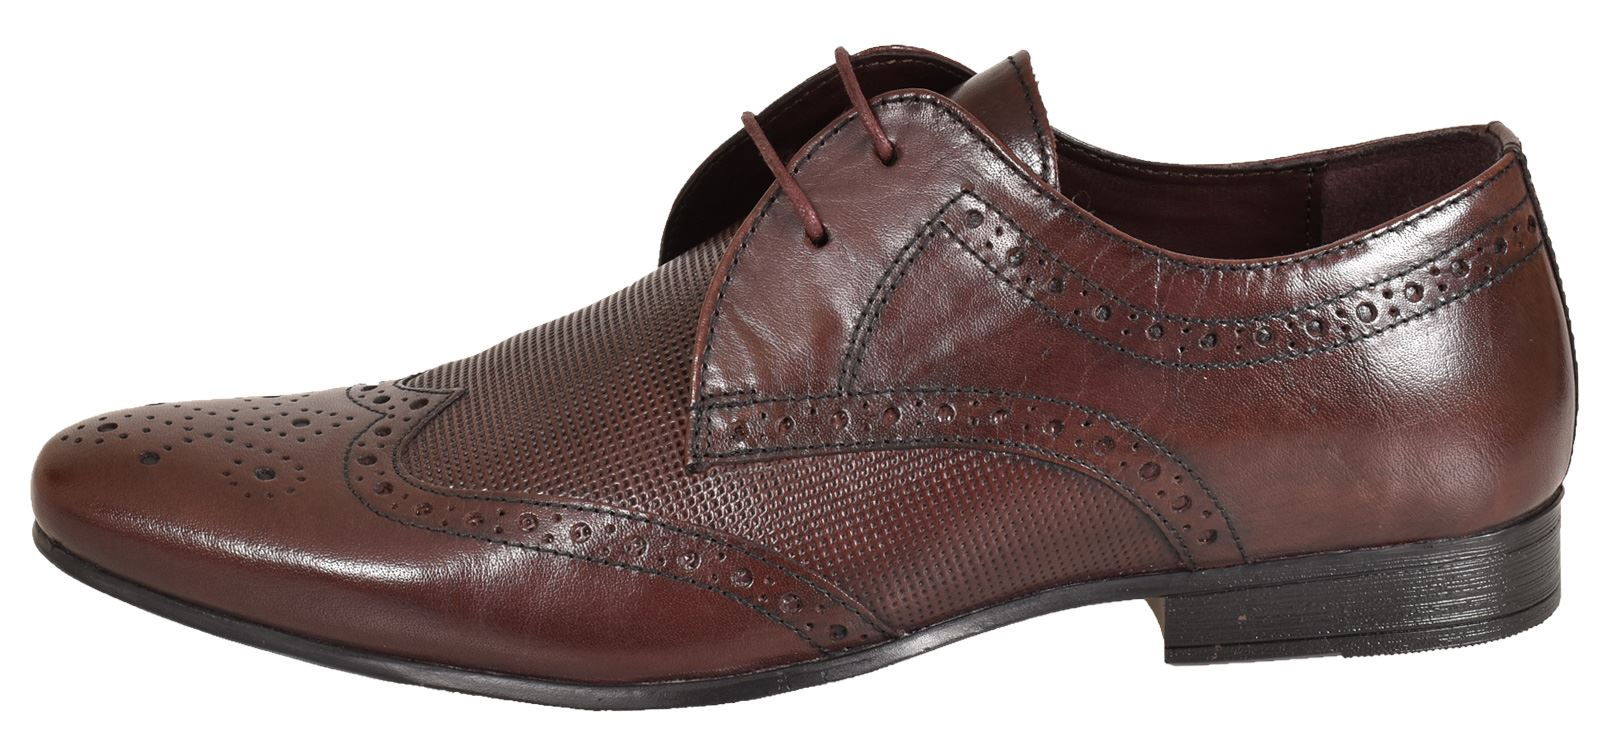 Mens-UK-Style-Leather-Lining-Formal-Office-Wedding-Smart-Work-Brogue-Shoes thumbnail 121